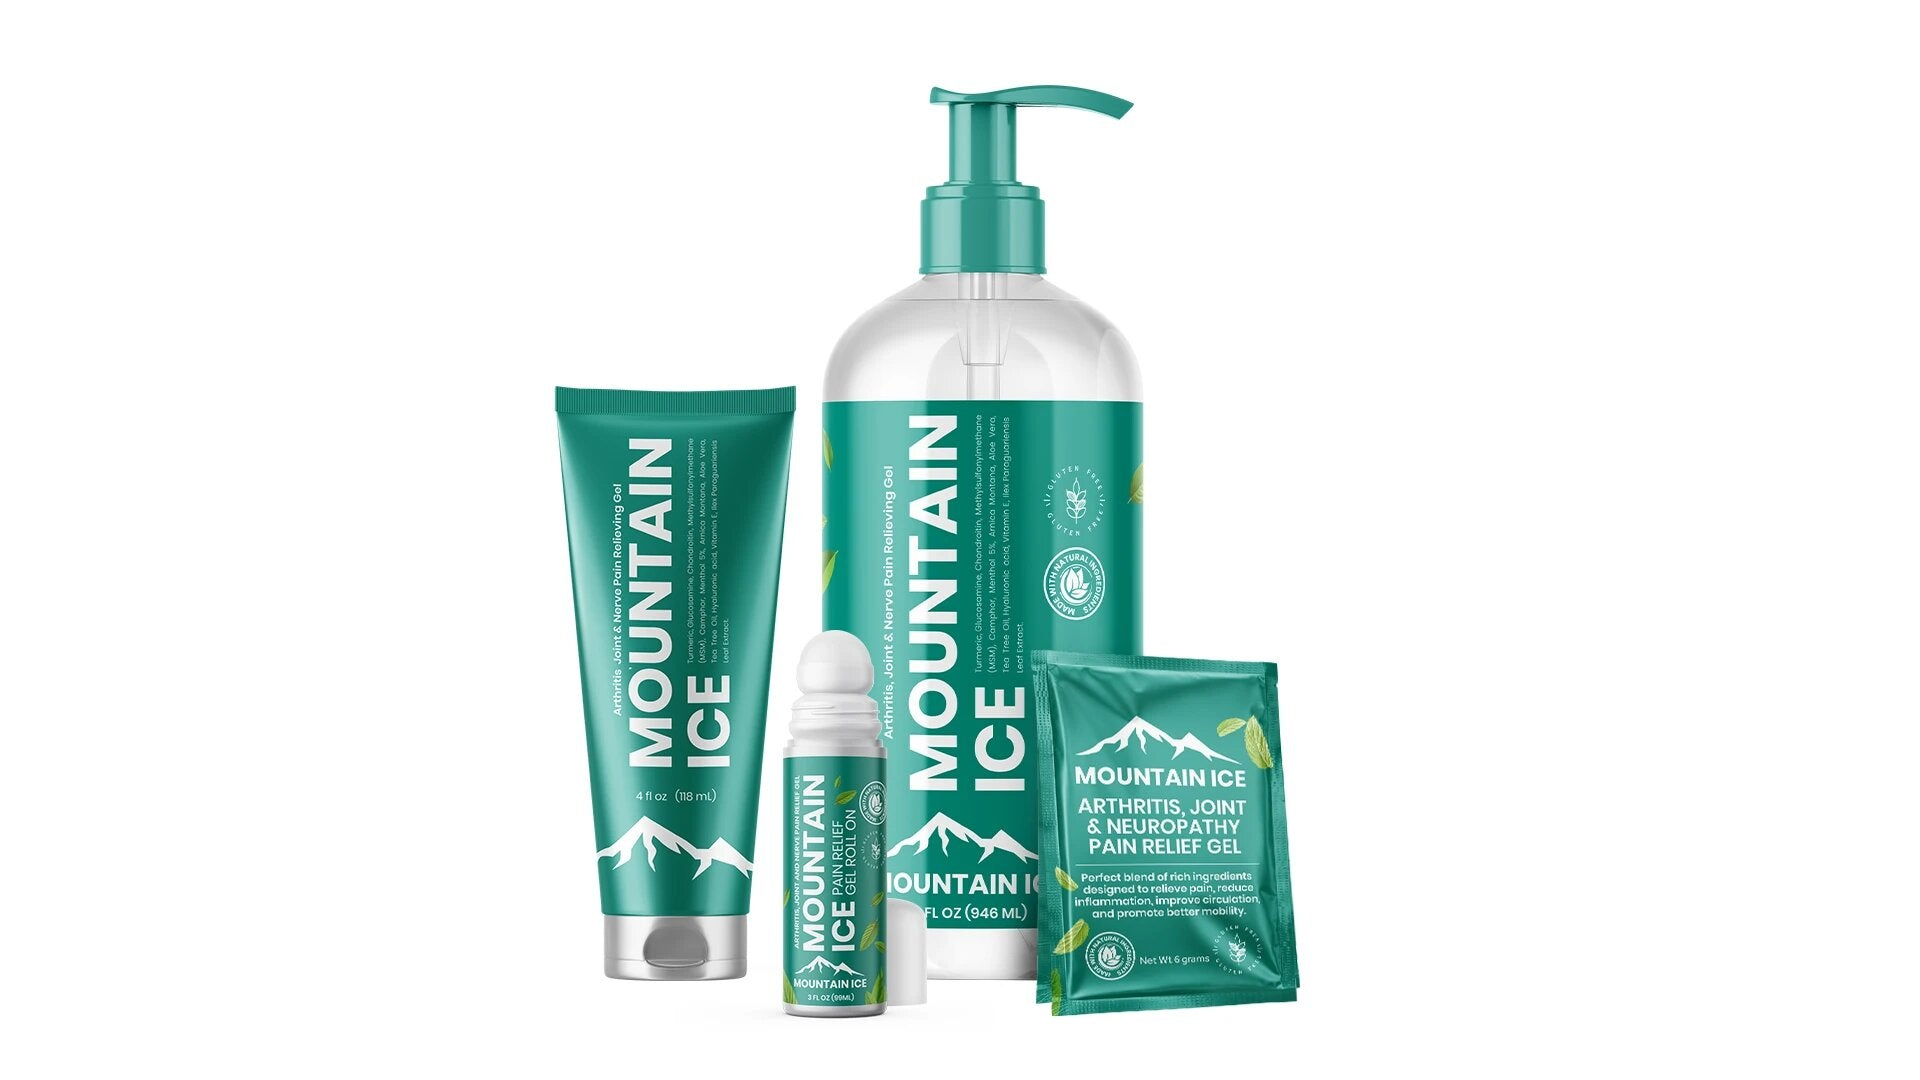 Mountain Ice Product Family